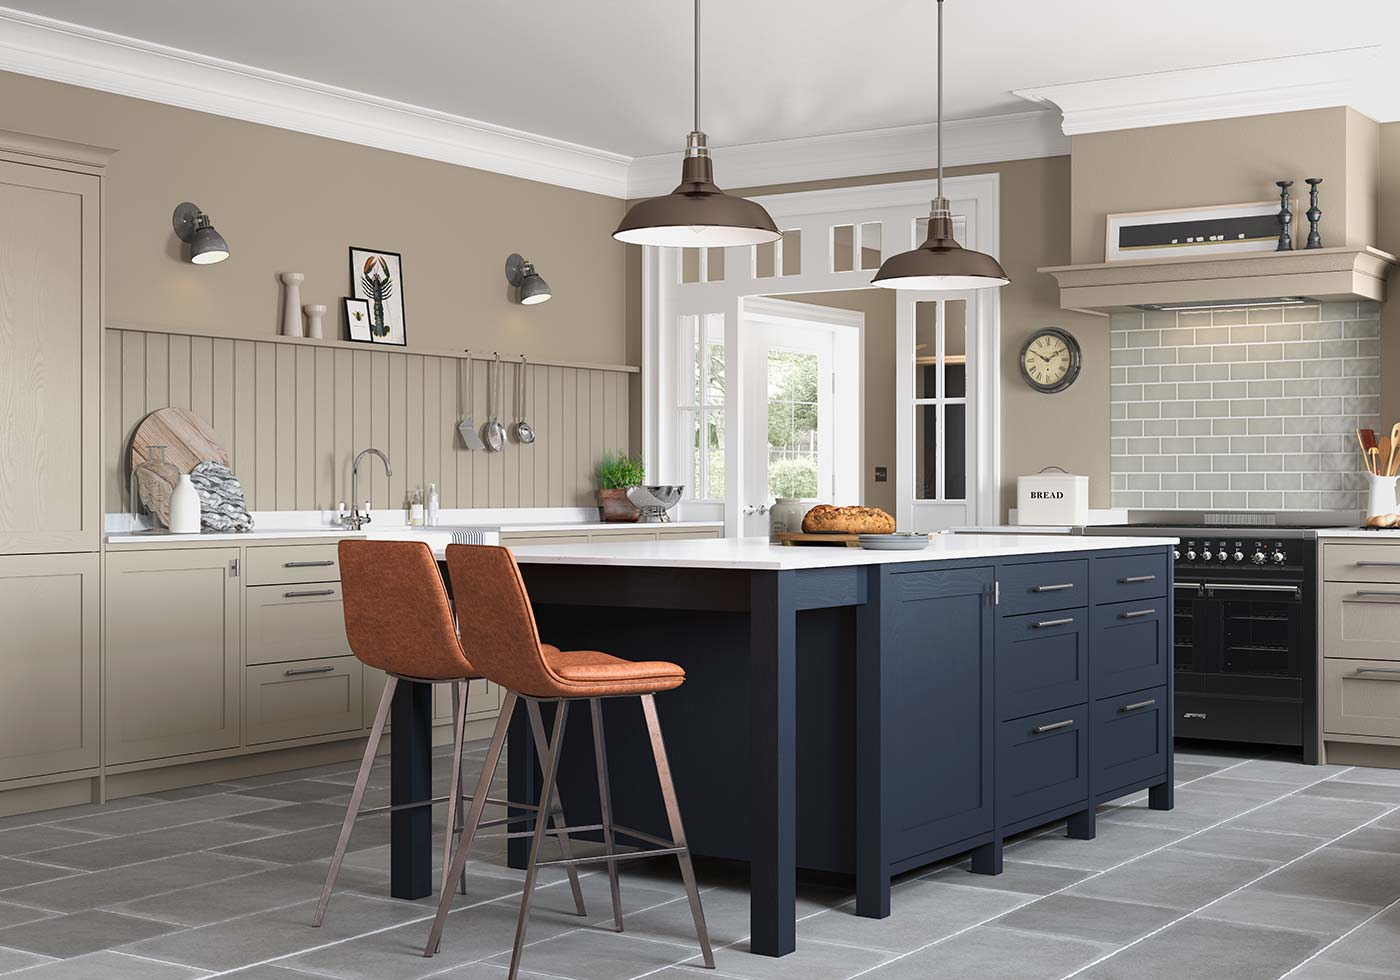 Hardwick luxury classic kitchen